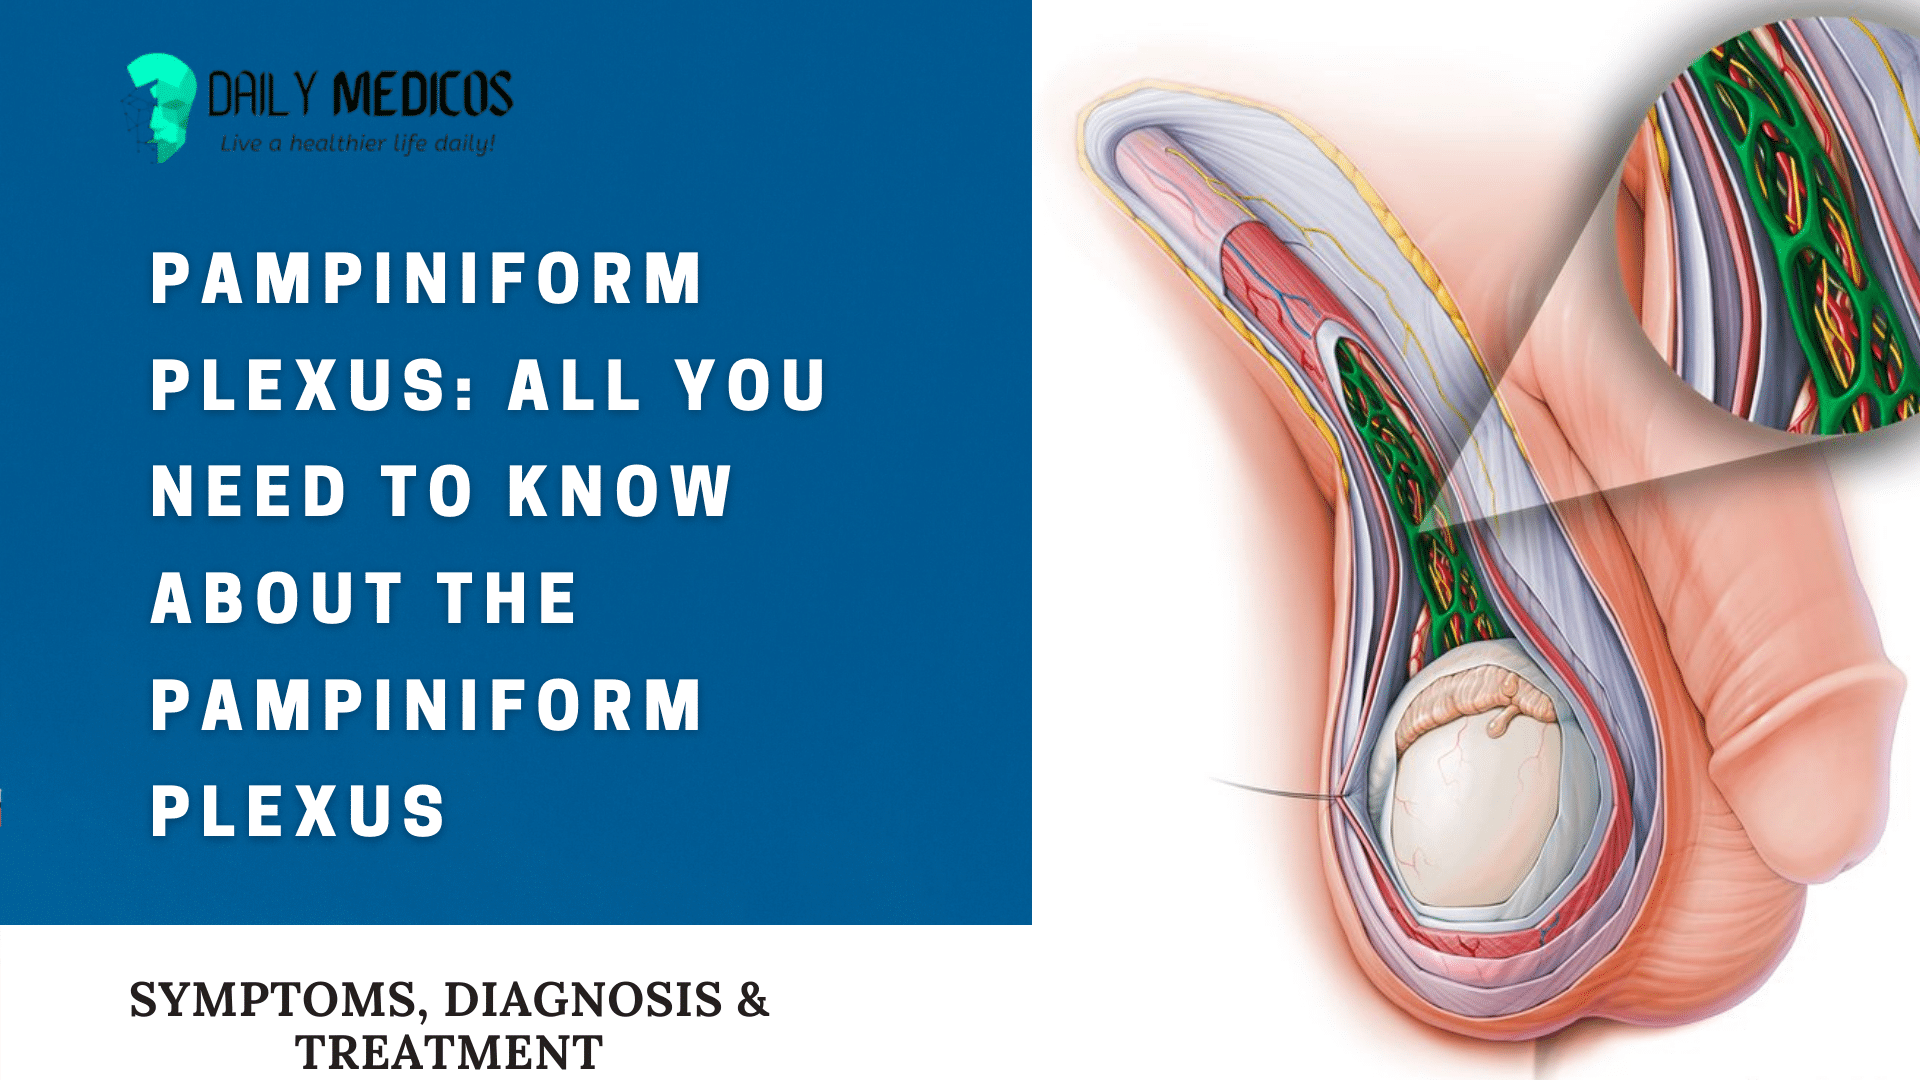 Pampiniform Plexus: All You Need to Know About The Pampiniform Plexus [Detail Guide] 1 - Daily Medicos